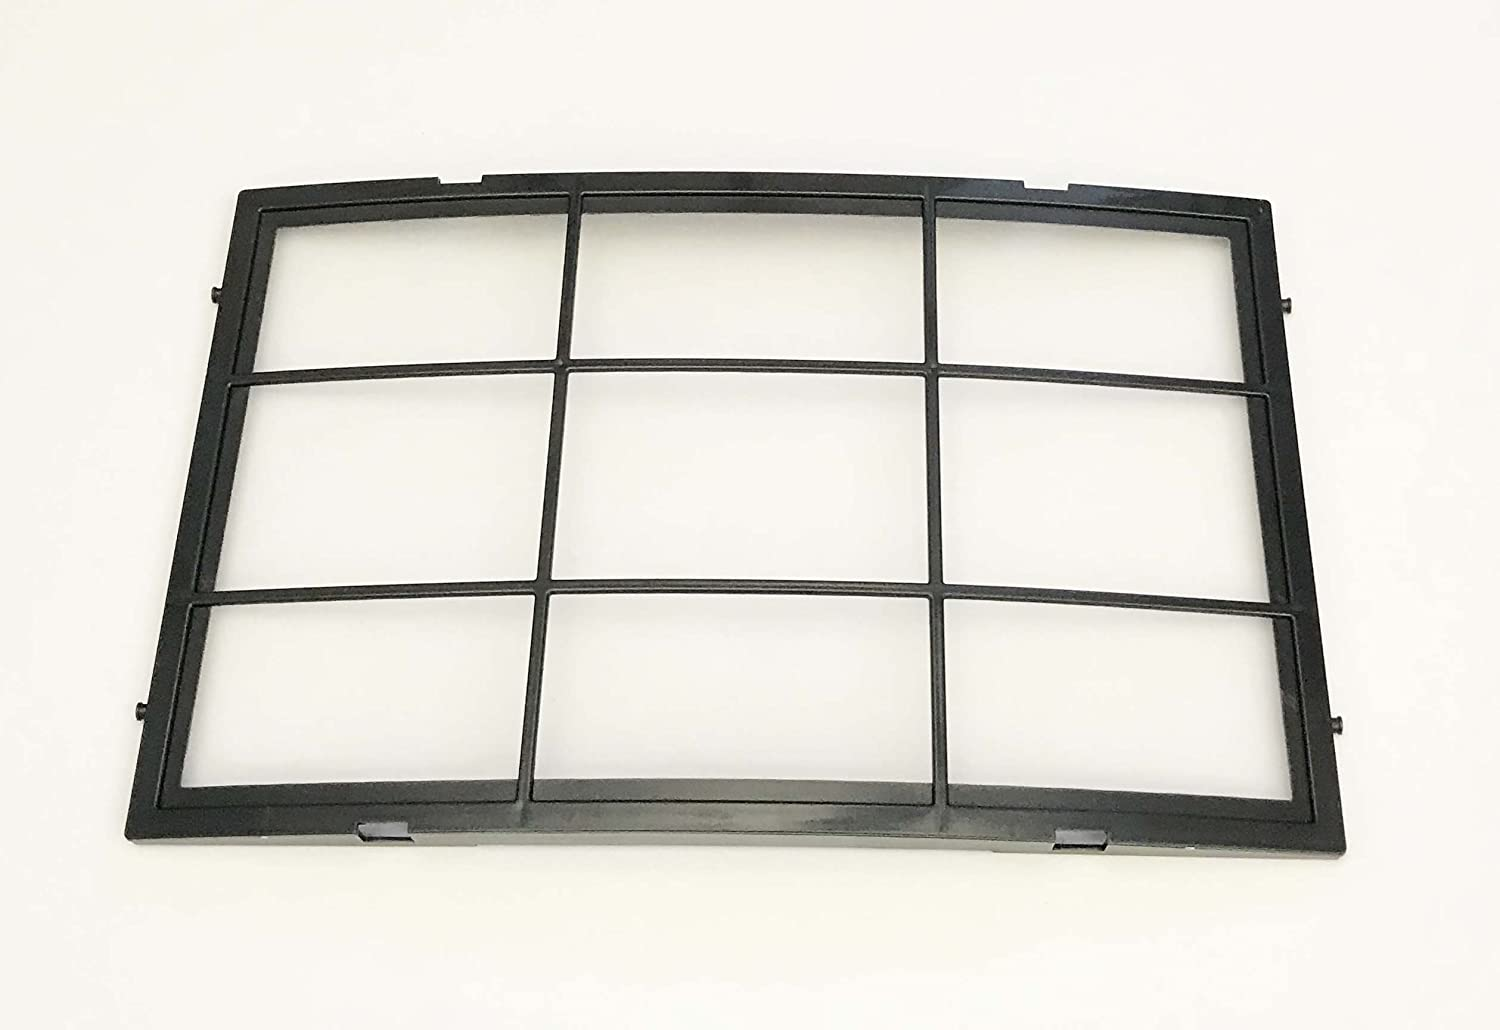 OEM Haier Air Conditioner AC Filter Specifically For HPN12XHM, HPND14XCP, HPND14XCT, HPND14XHM, HPND14XHP, HPND14XHT